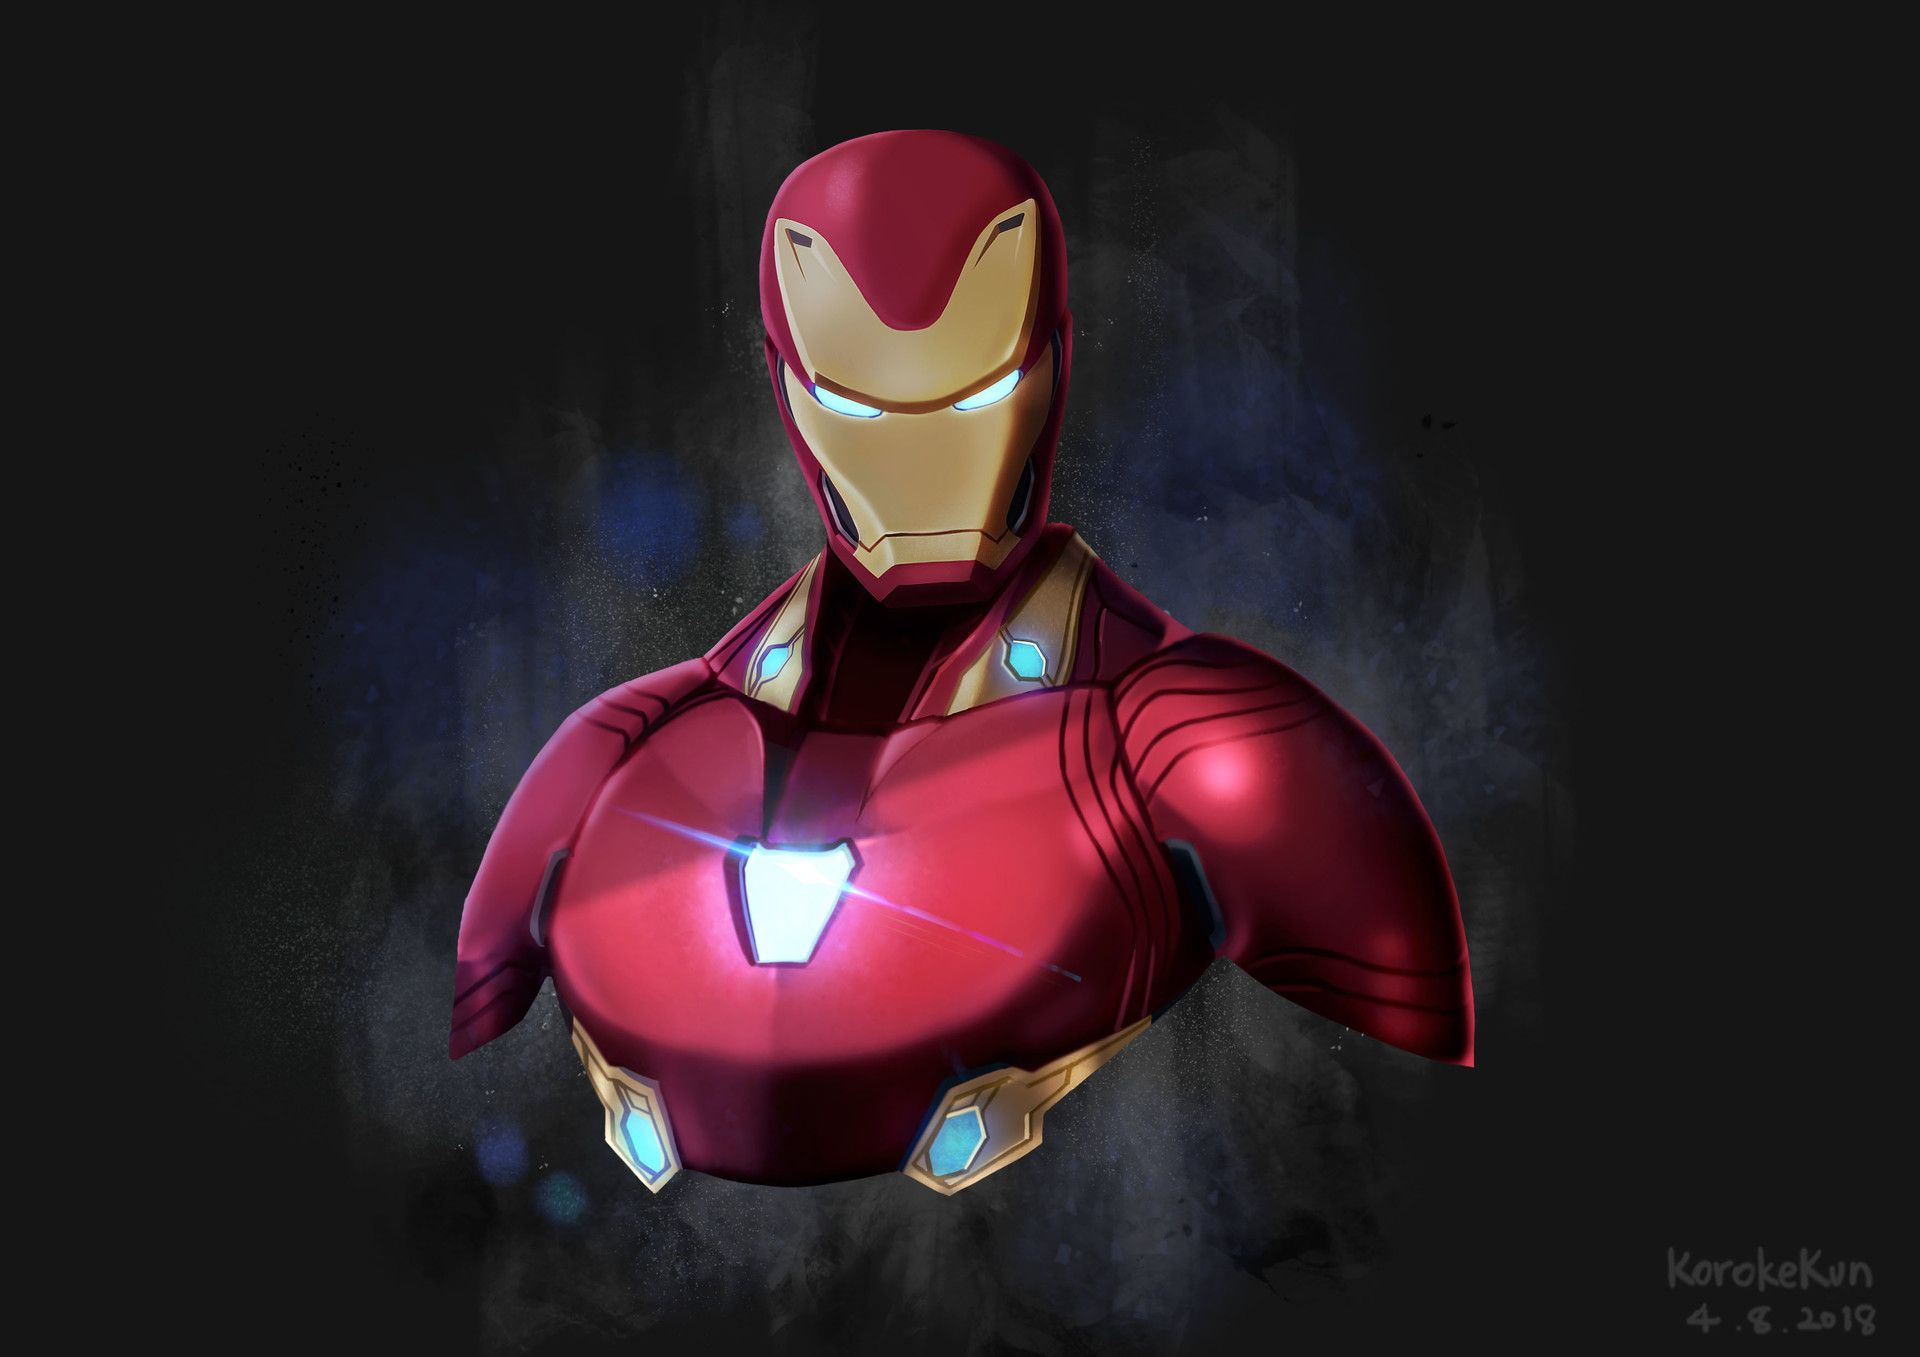 iron man avengers infinity war artwork http://livewallpaperswide